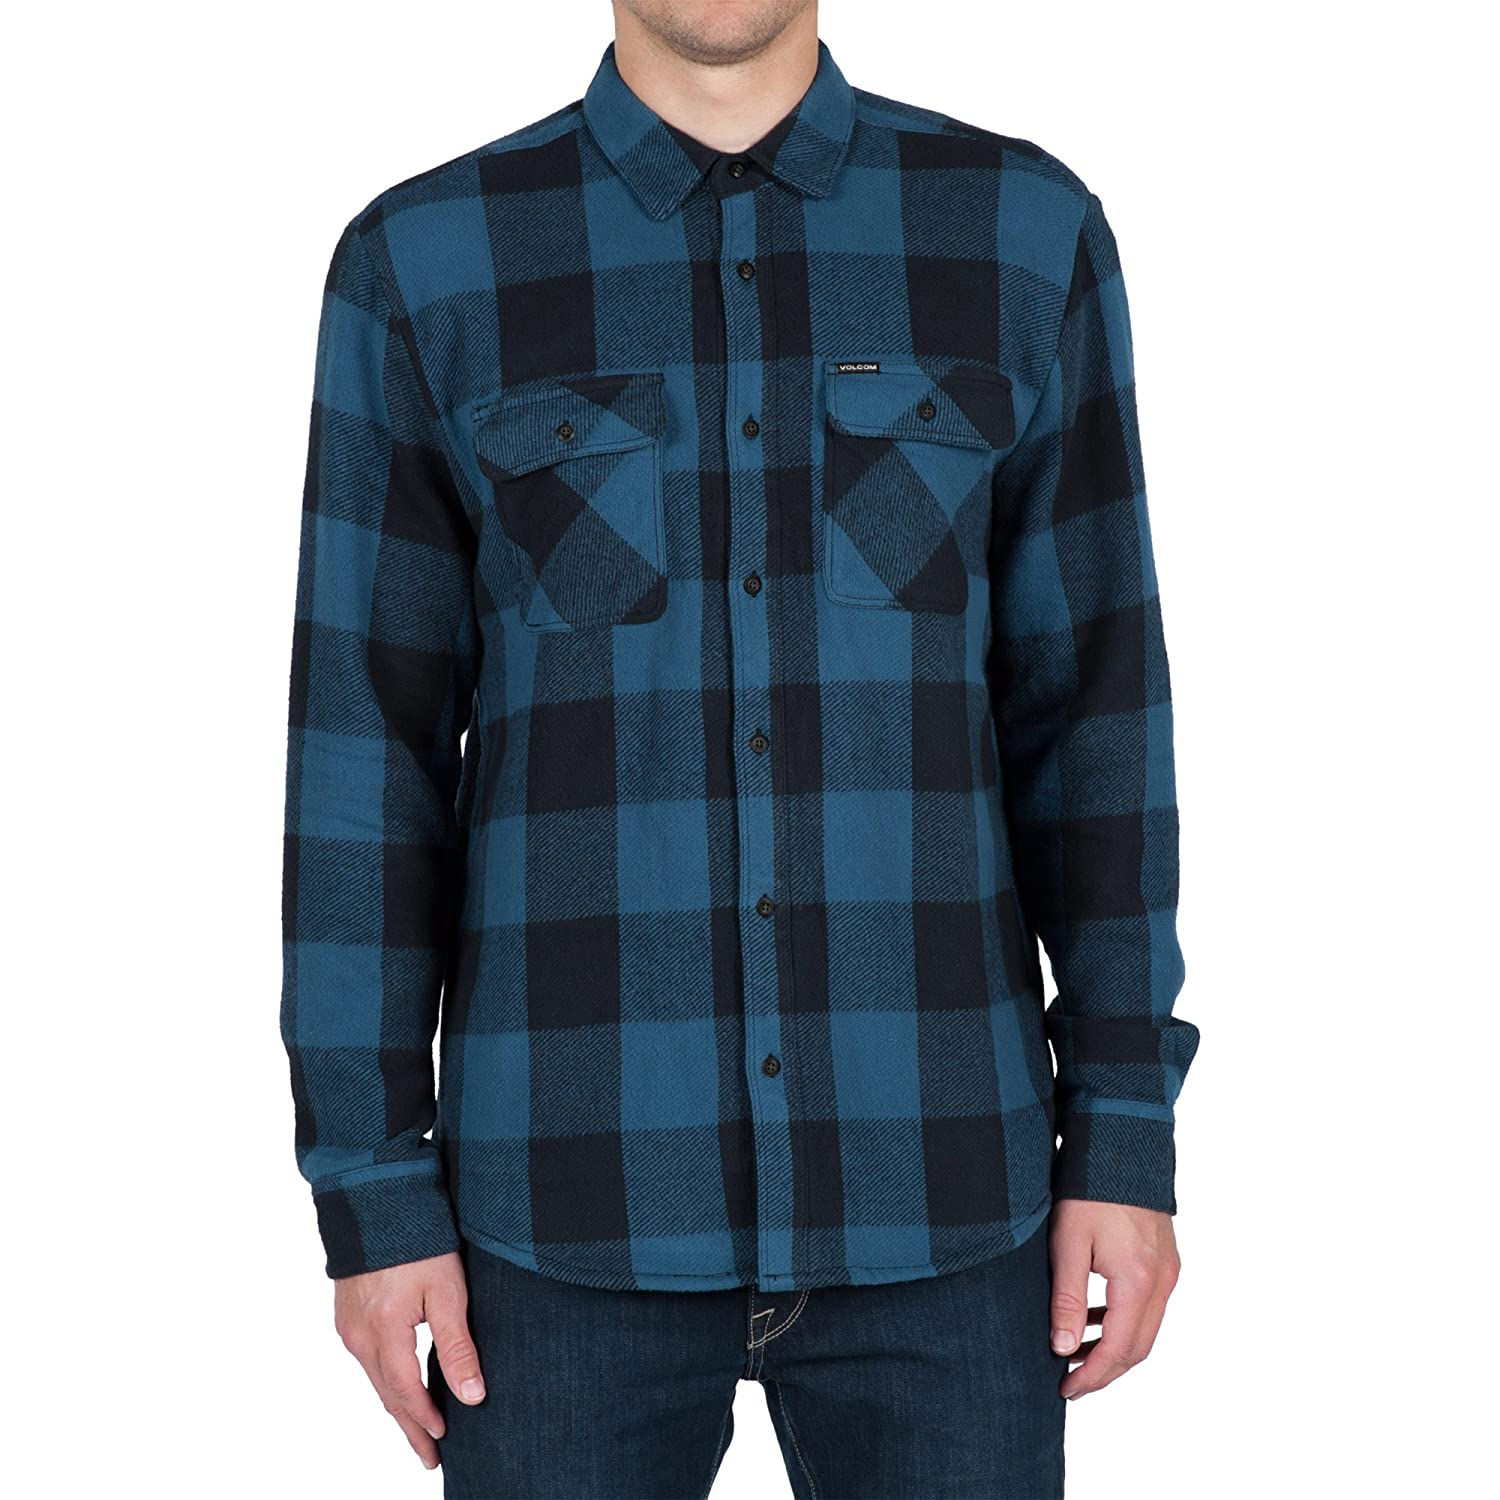 Volcom ENDERS L/S Airforce blue HOLIDAY 2016 - S US: Volcom ...